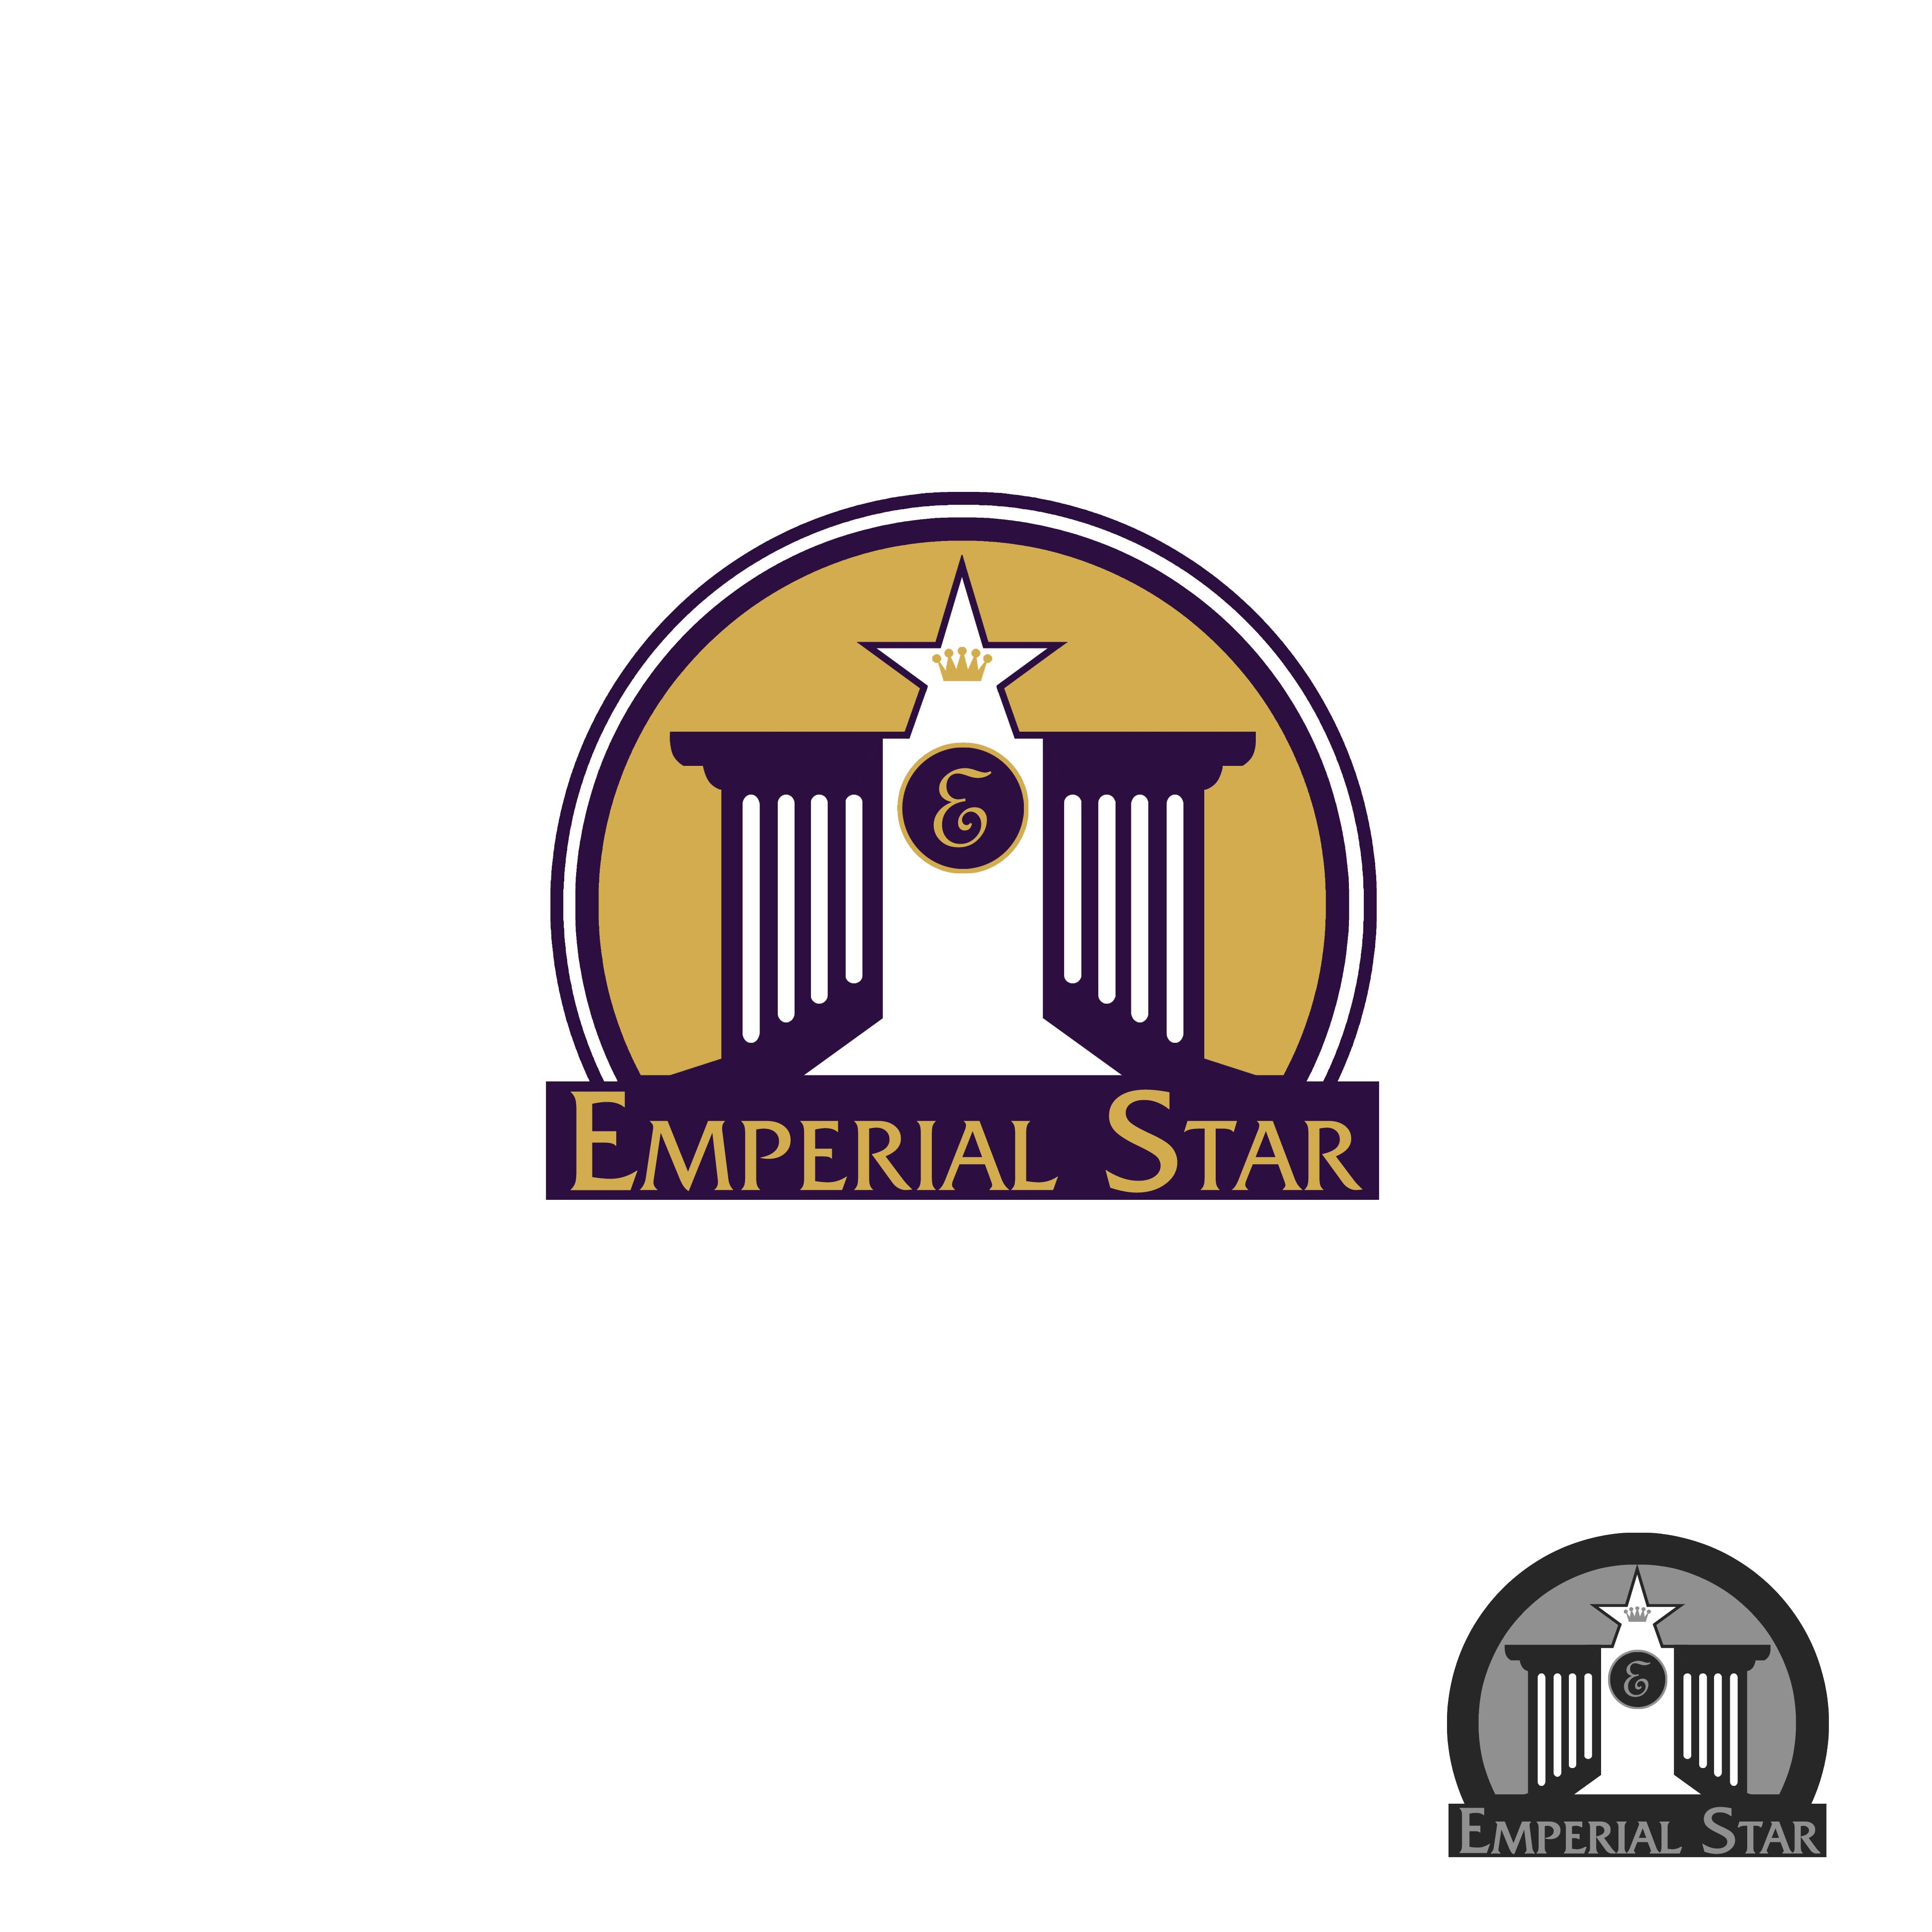 Logo Design by Cesar III Sotto - Entry No. 147 in the Logo Design Contest Emperial Star Logo Design.